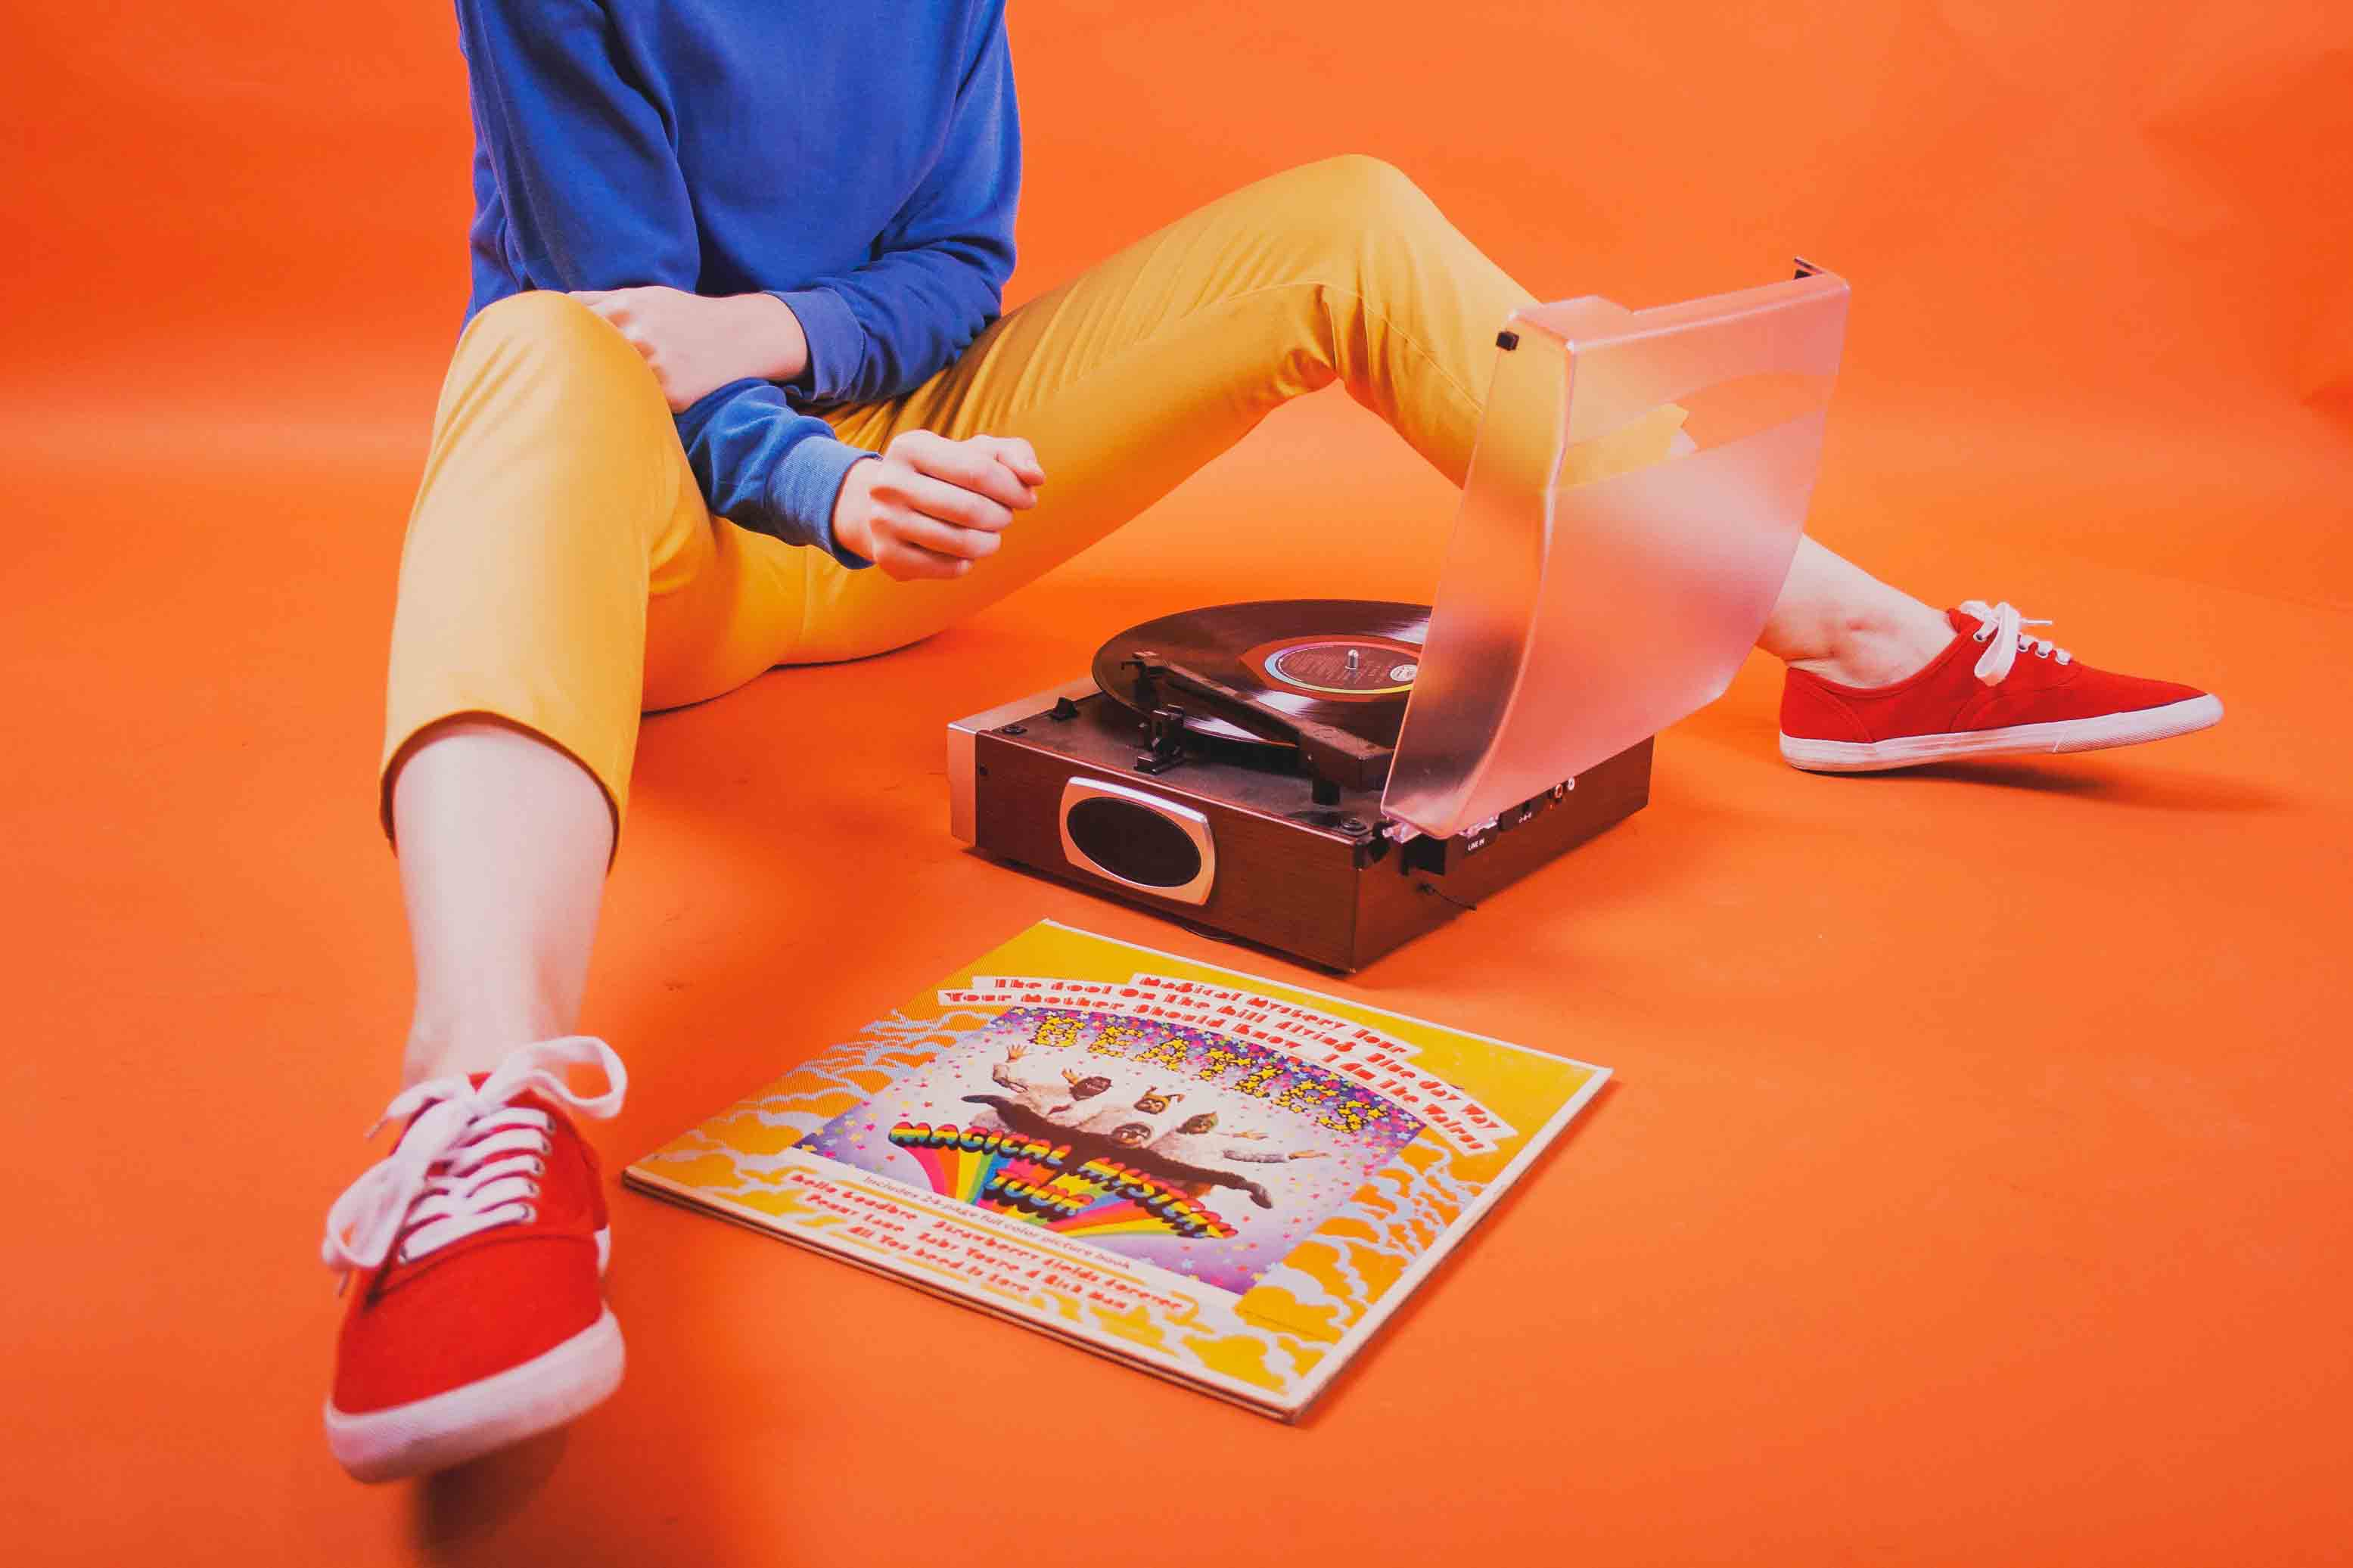 How To Operate A Vintage Record Player Correctly